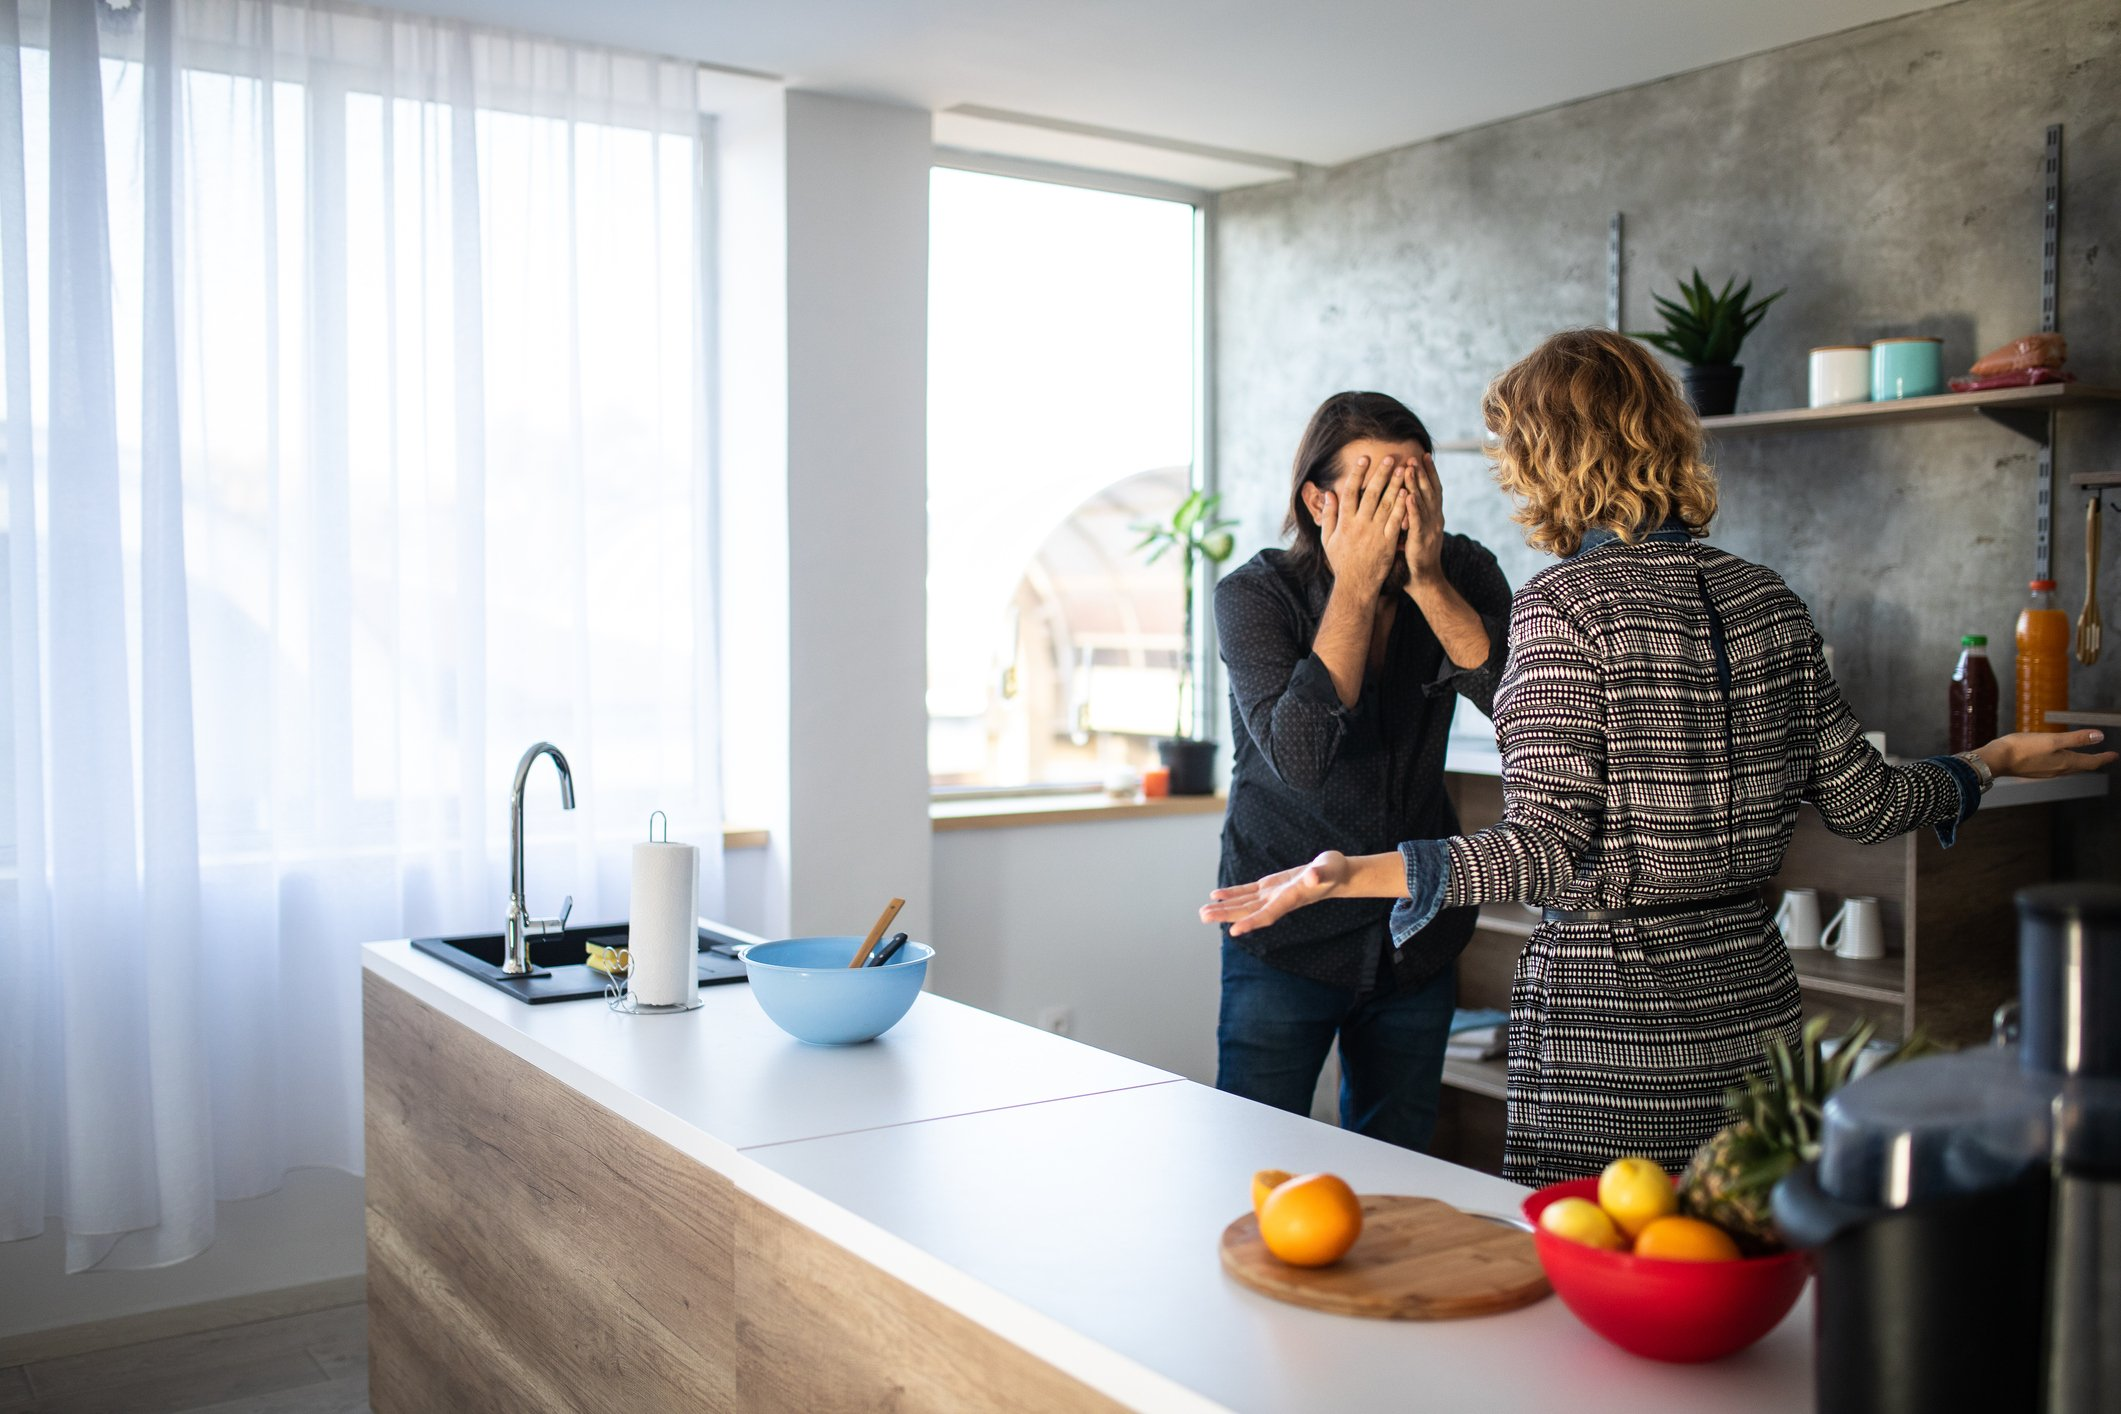 A man and a woman having argument in the kitchen in the morning | Photo: Getty Images